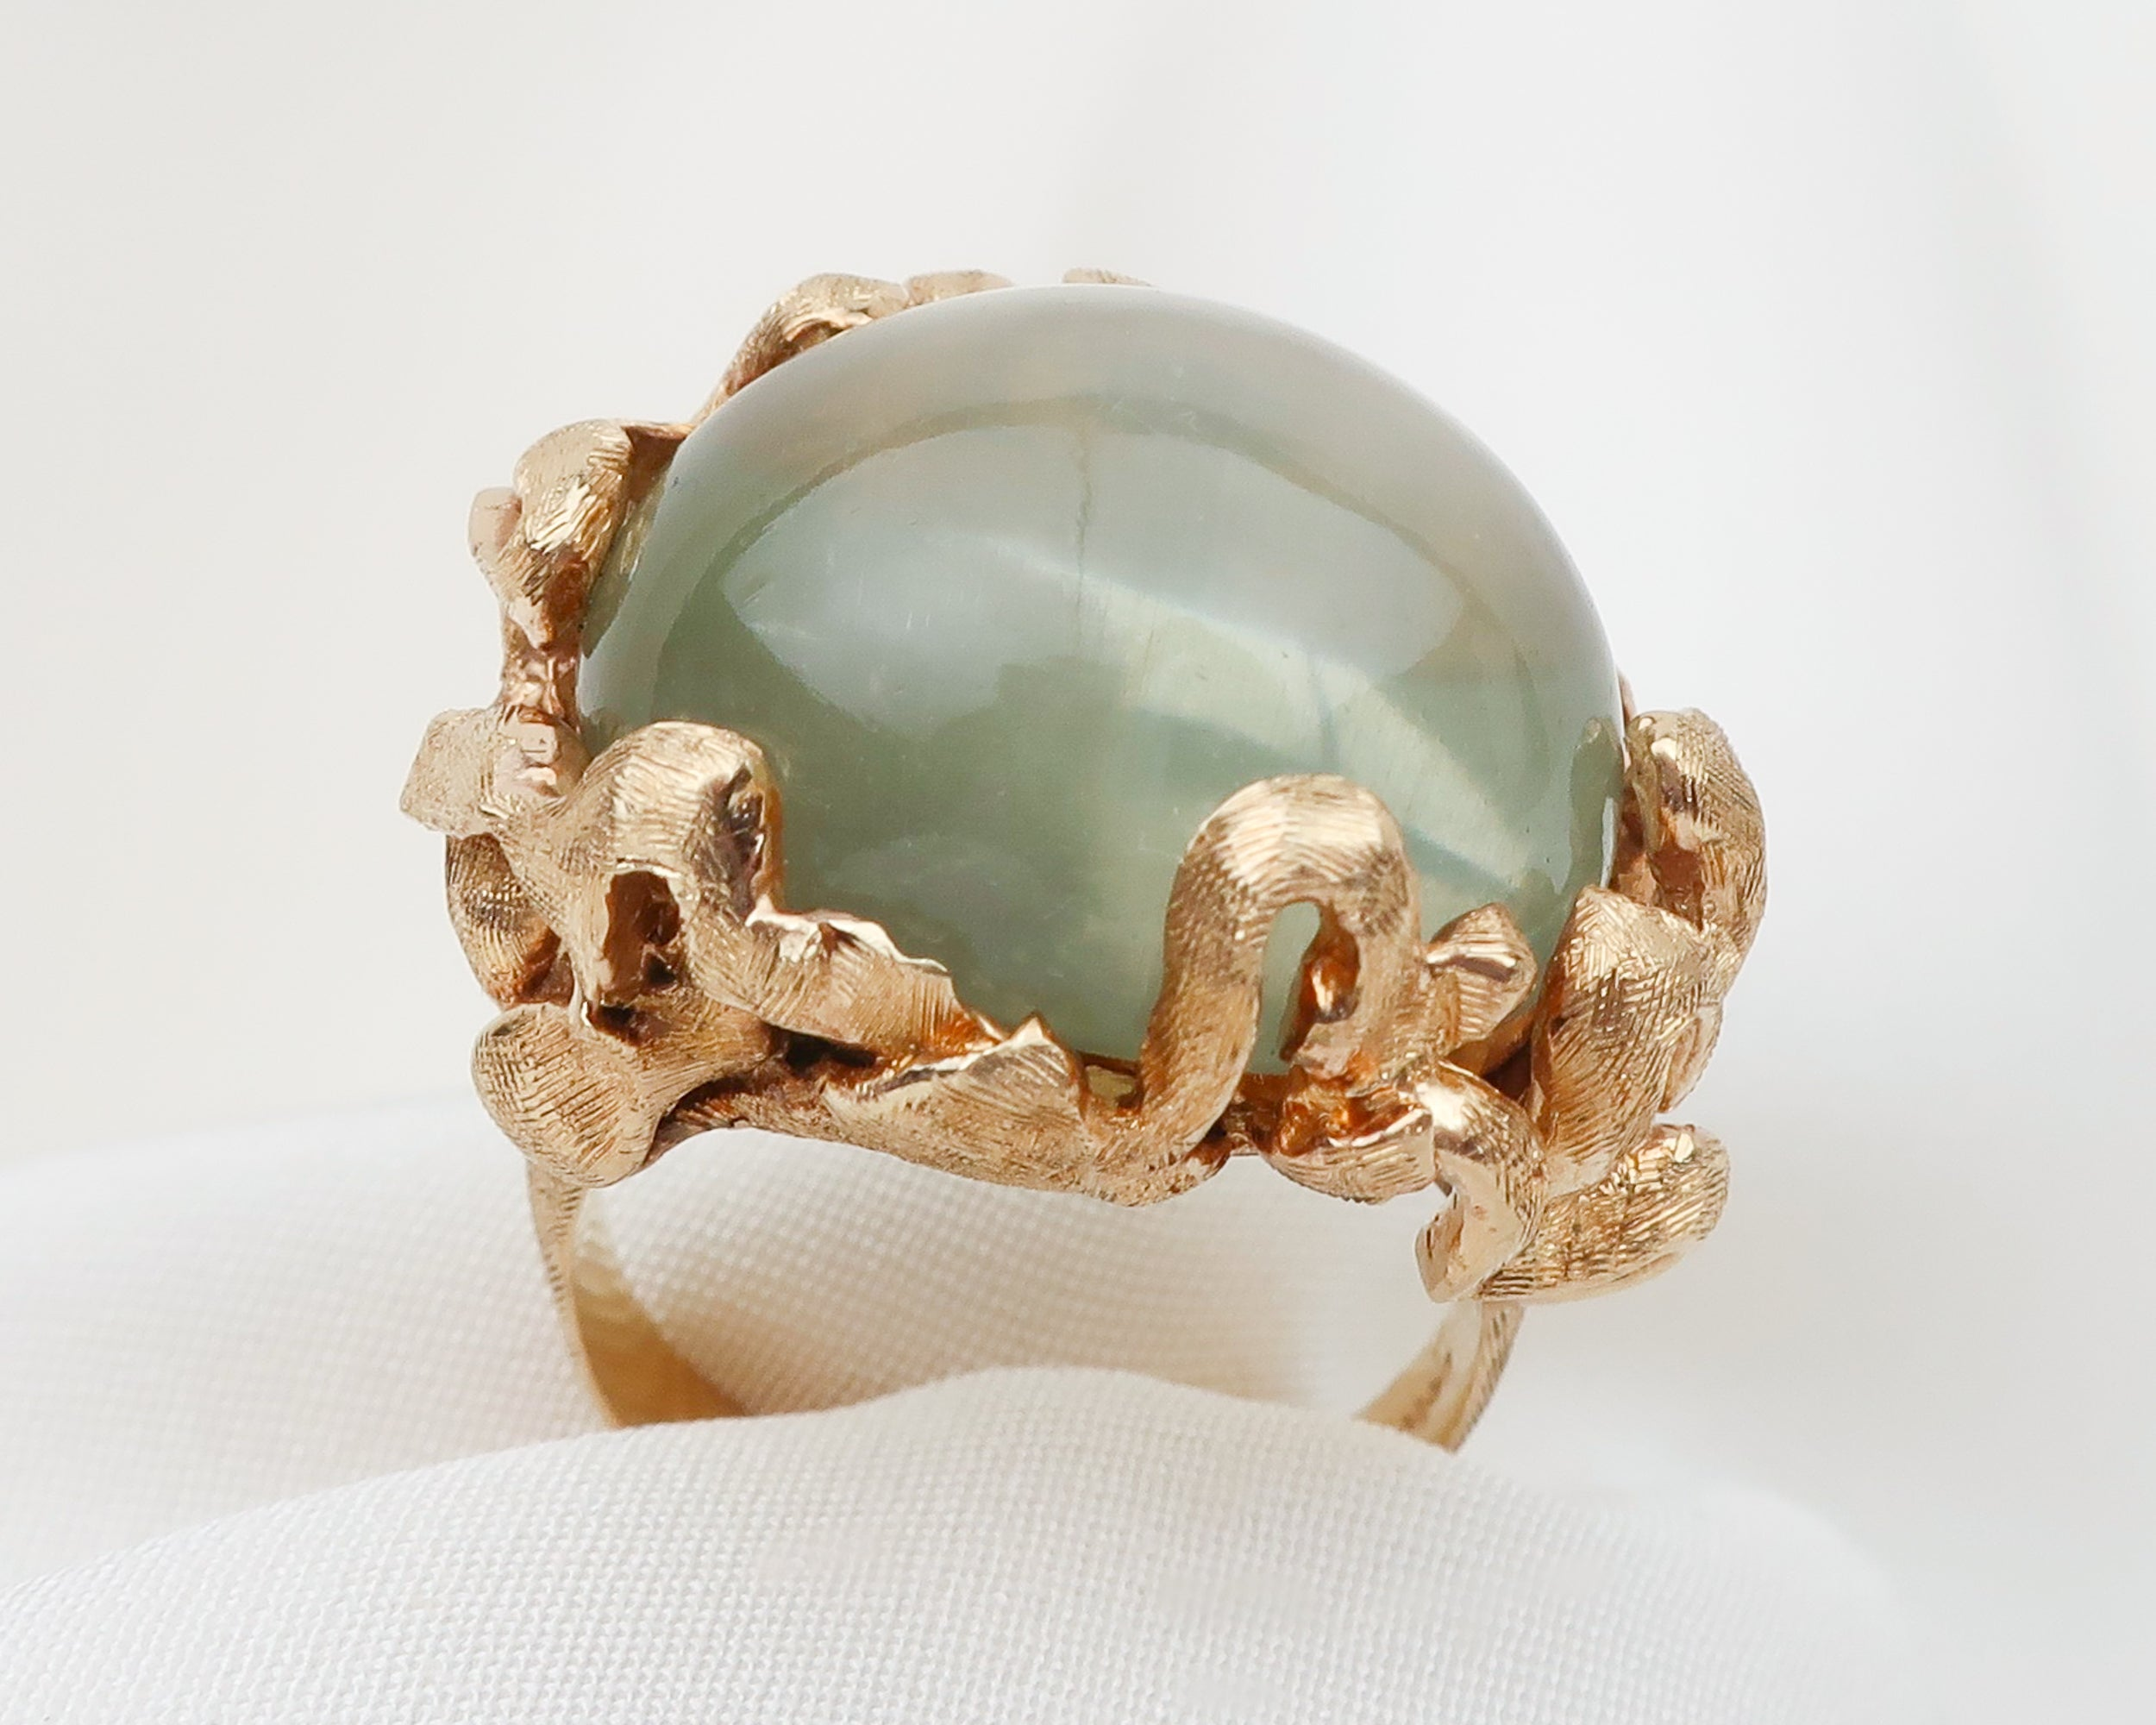 1970s Cat's Eye Moonstone Cabochon Ring